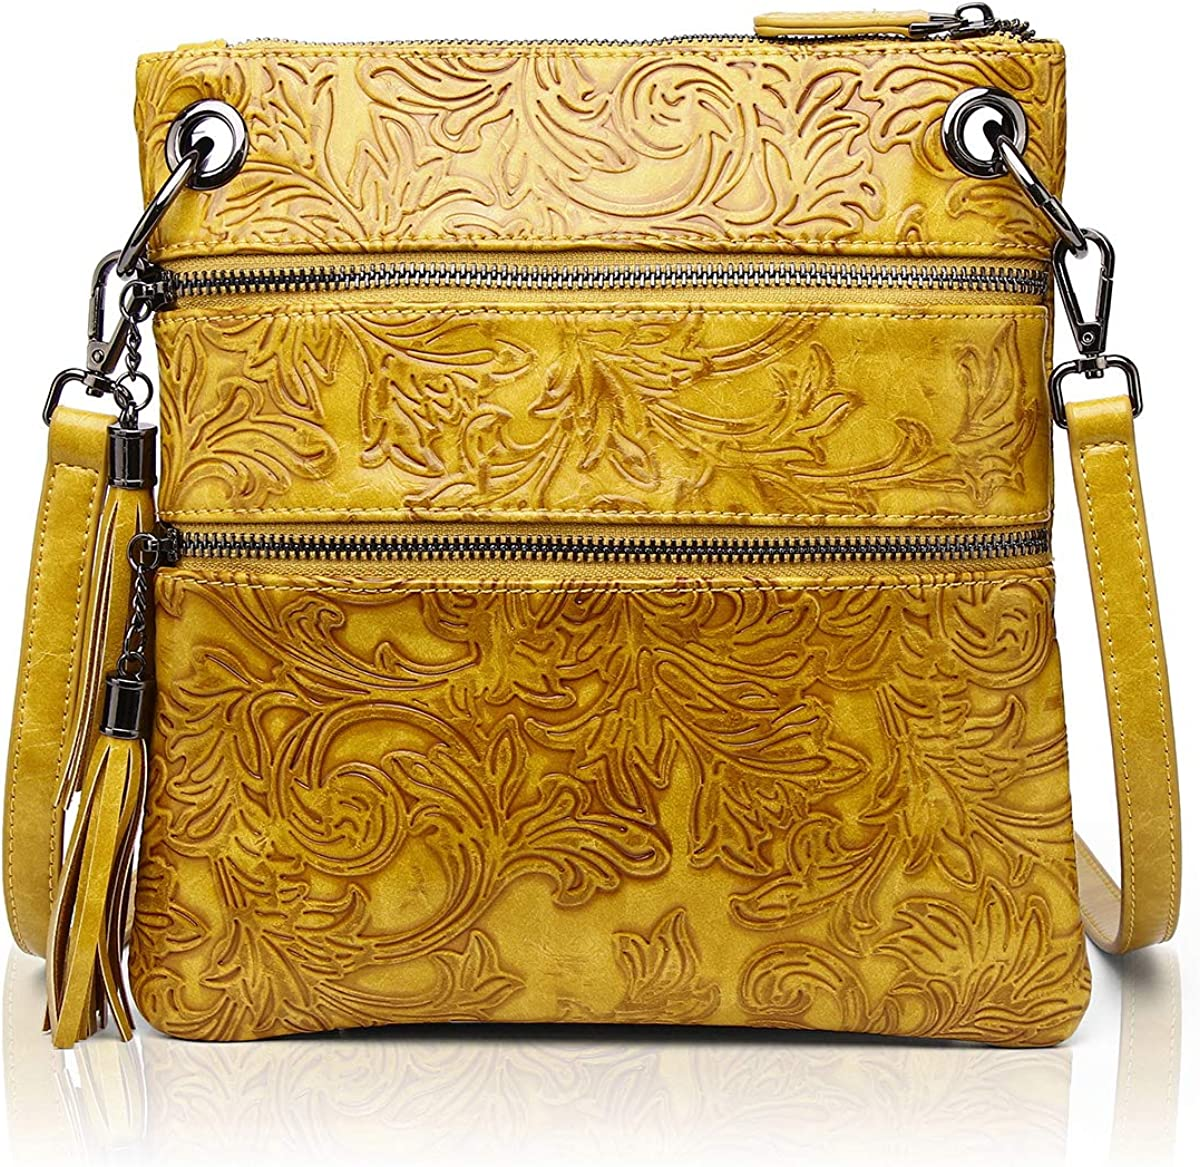 Women Special Campaign Crossbody Bags Embossed Large Outlet ☆ Free Shipping Capacity Cellphone Purse Gir